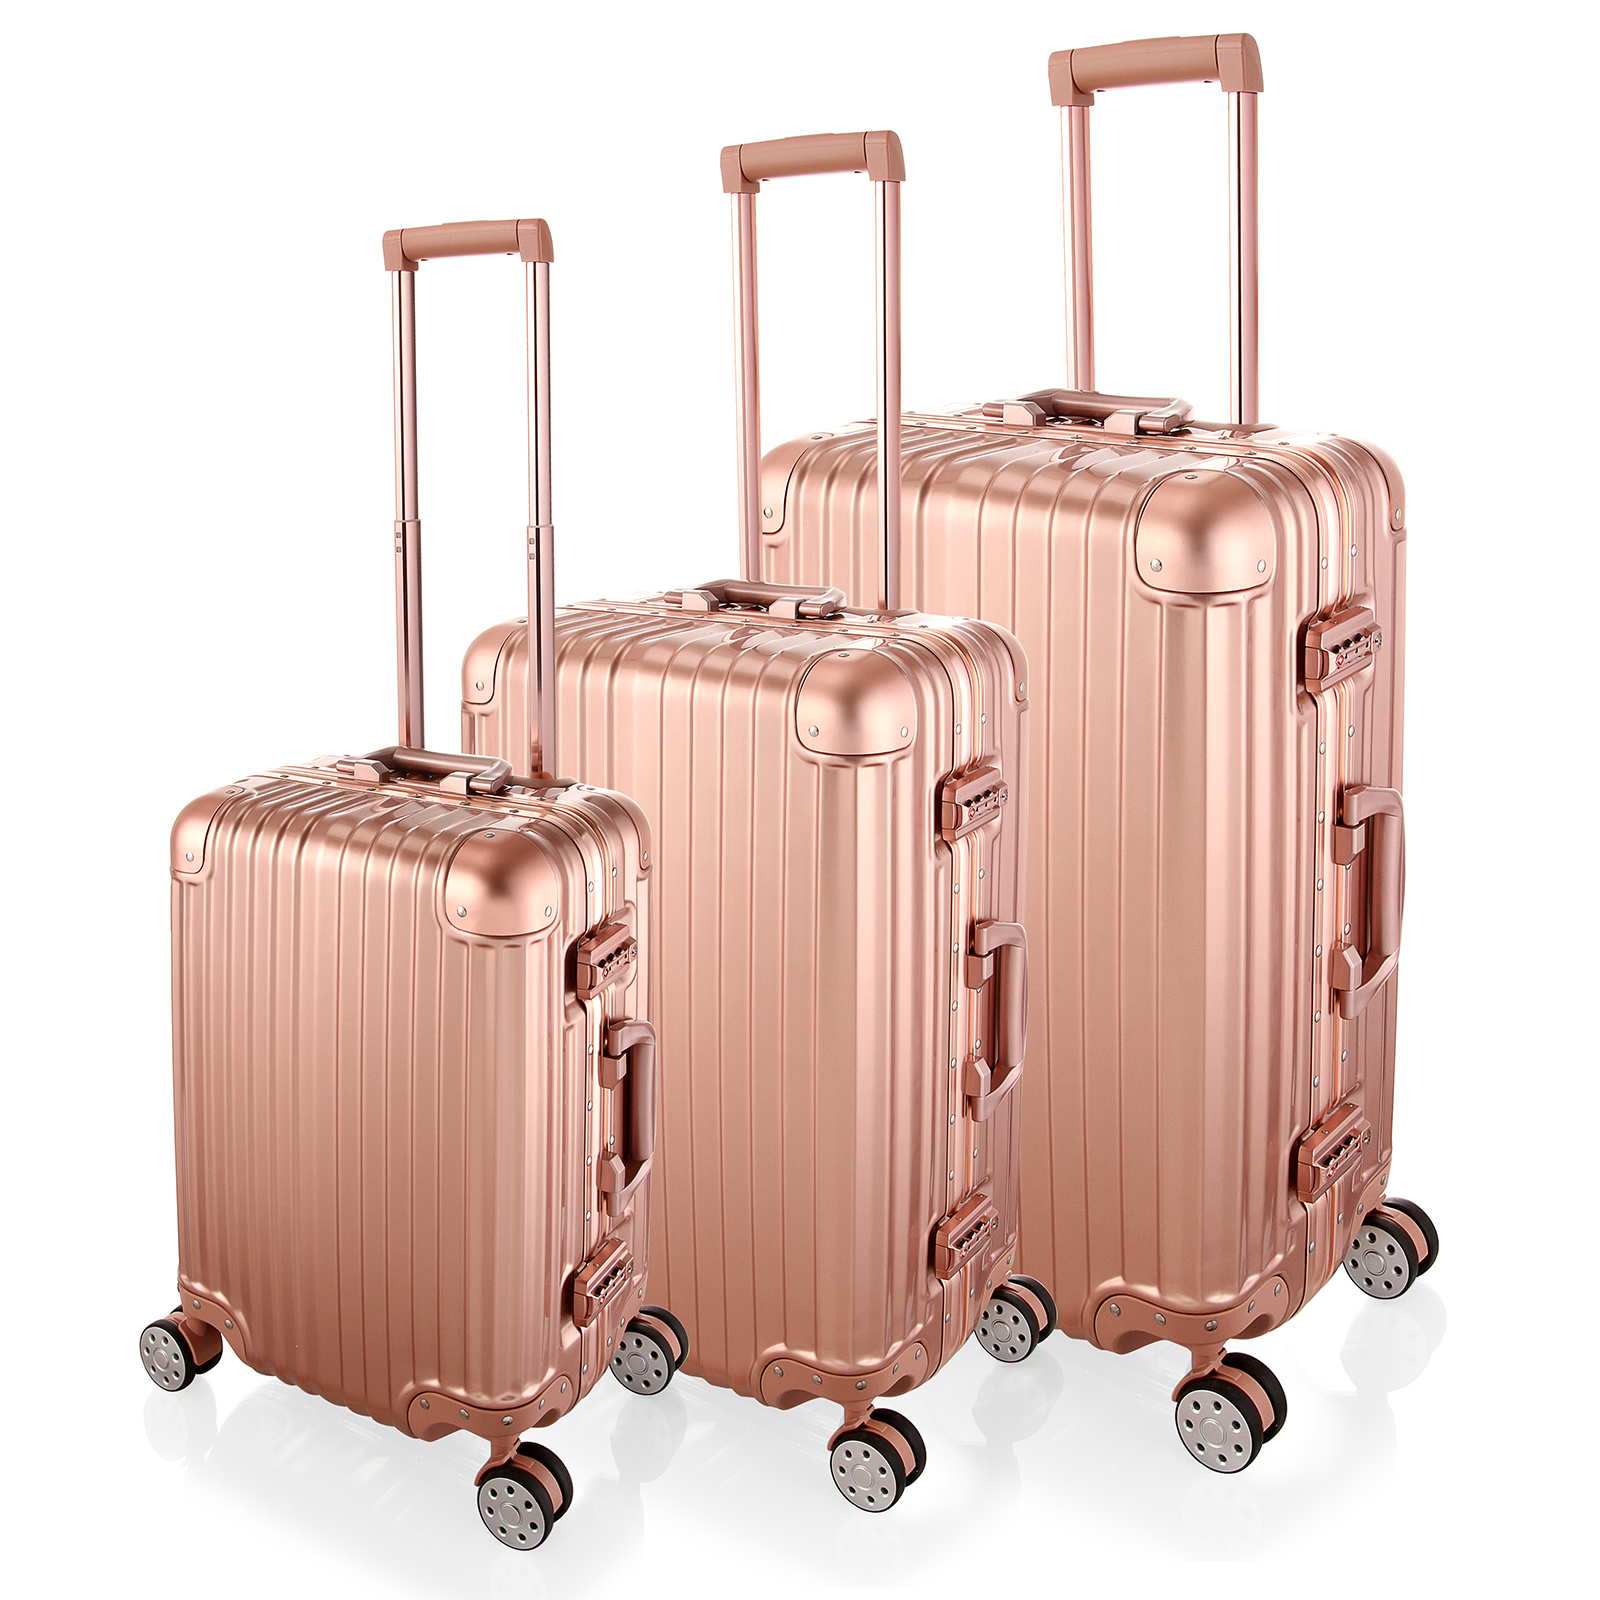 20/24/28 inch Luxury Rose Gold Rolling Luggage 4 Wheels Spinner Suitcase Aluminum Frame Luggage PC Trolley Case|Rolling Luggage| |  - title=